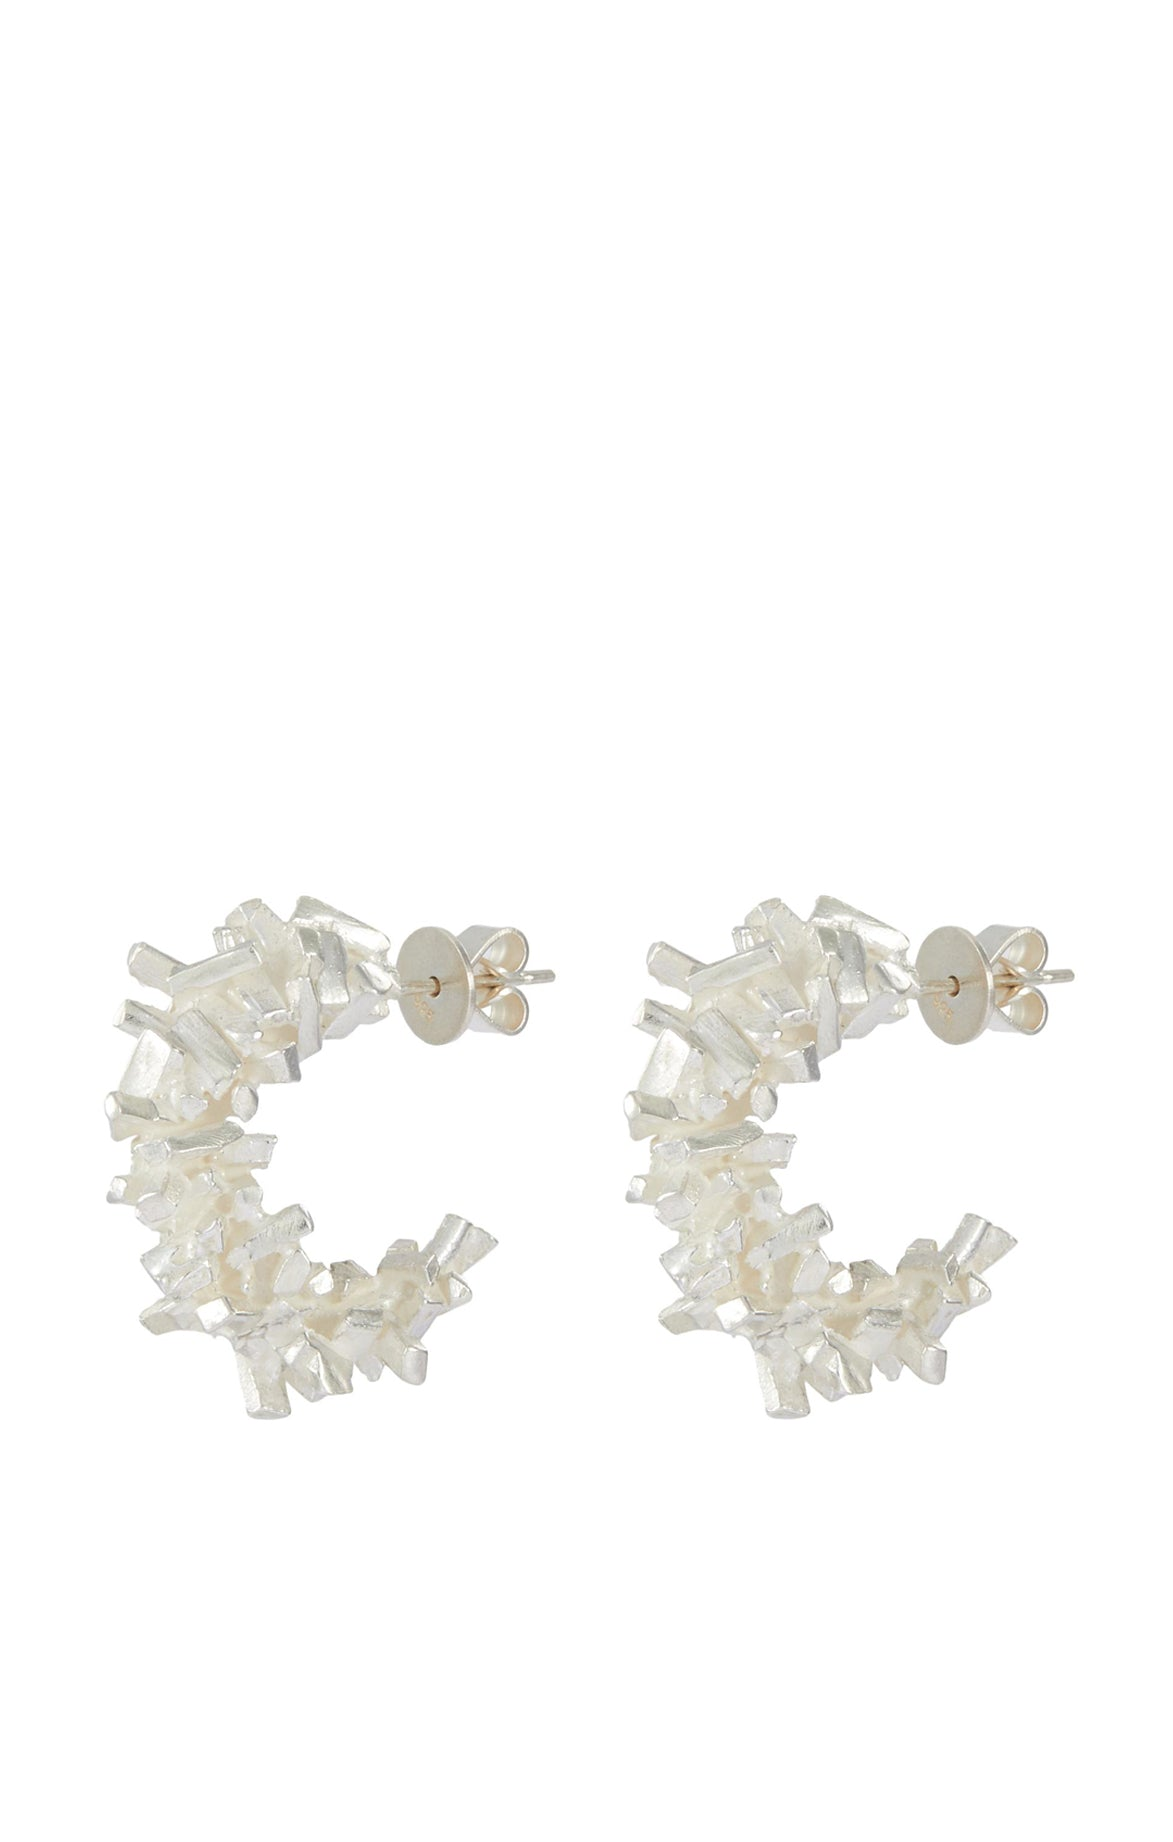 Confetti Irregular I Earrings